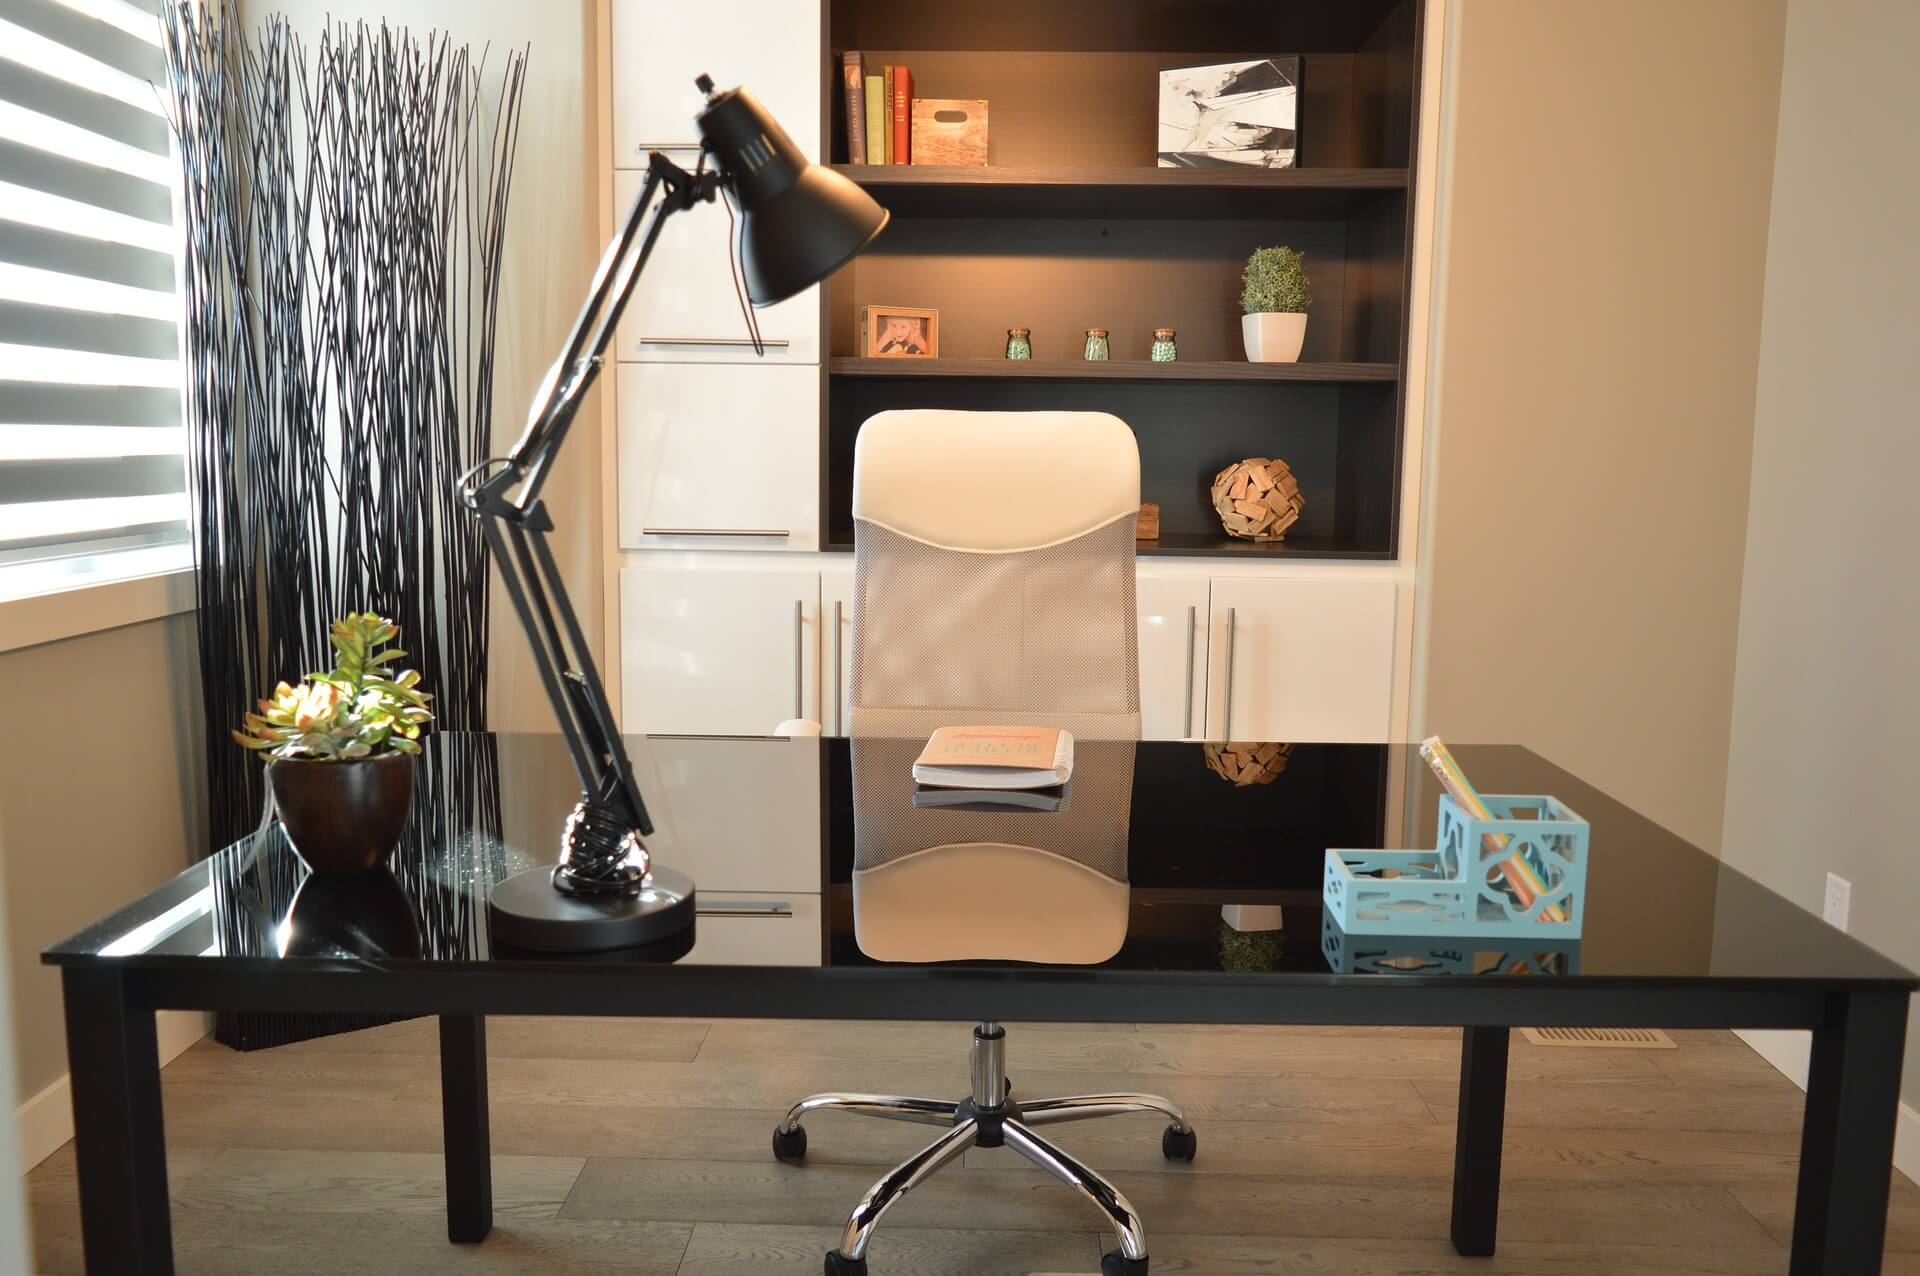 How To Design Your Study Room For The Best Output Interior Design Design News And Architecture Trends